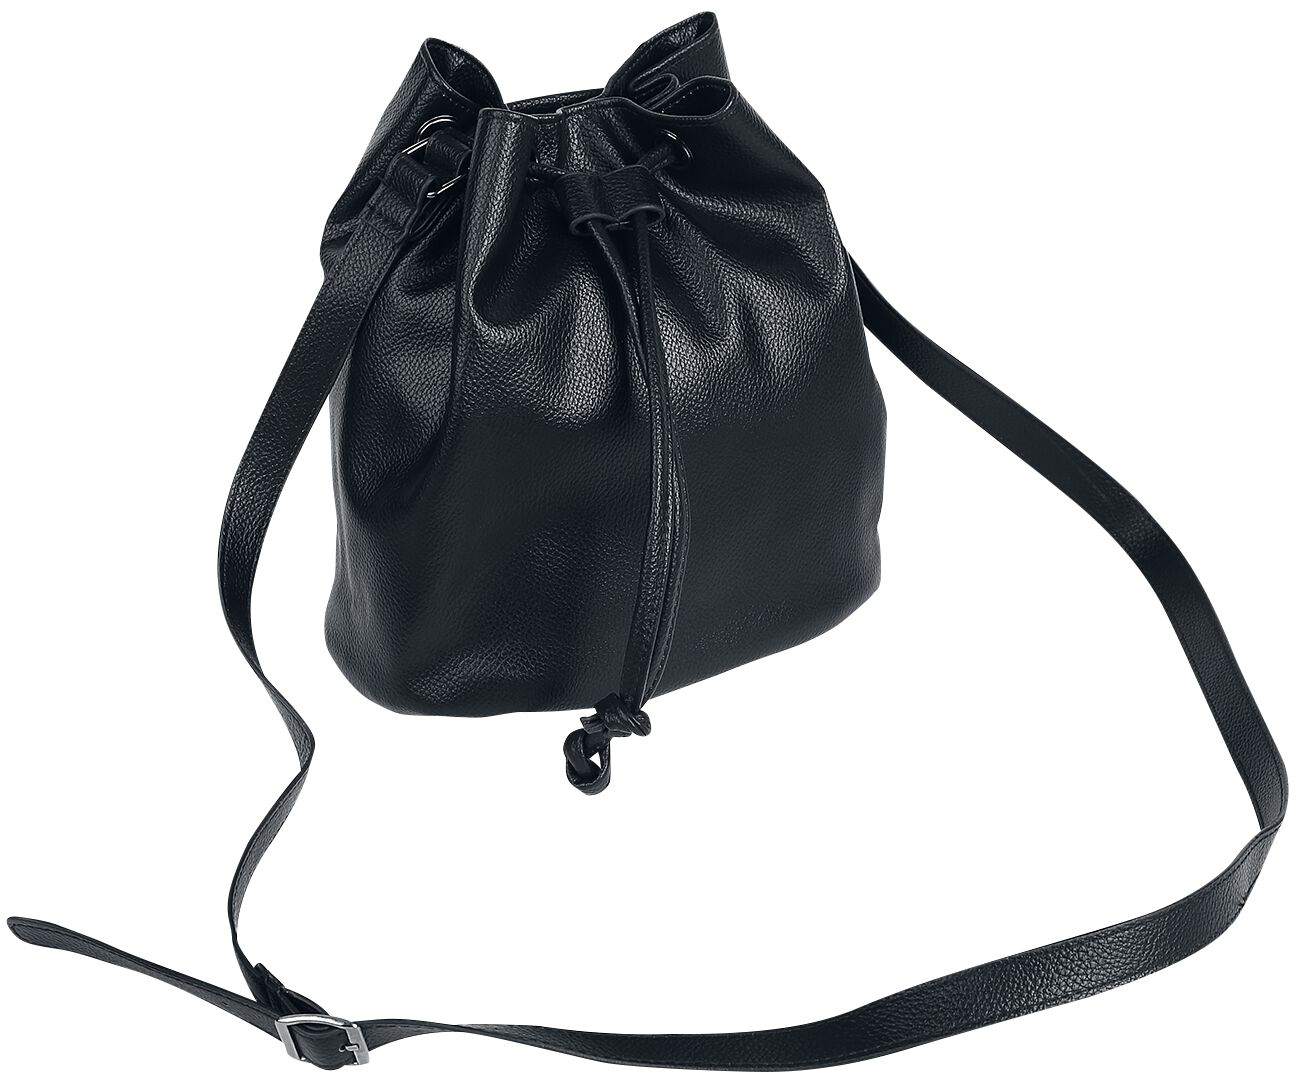 Image of   Quadra NuHide Bucket Bag Håndtaske sort